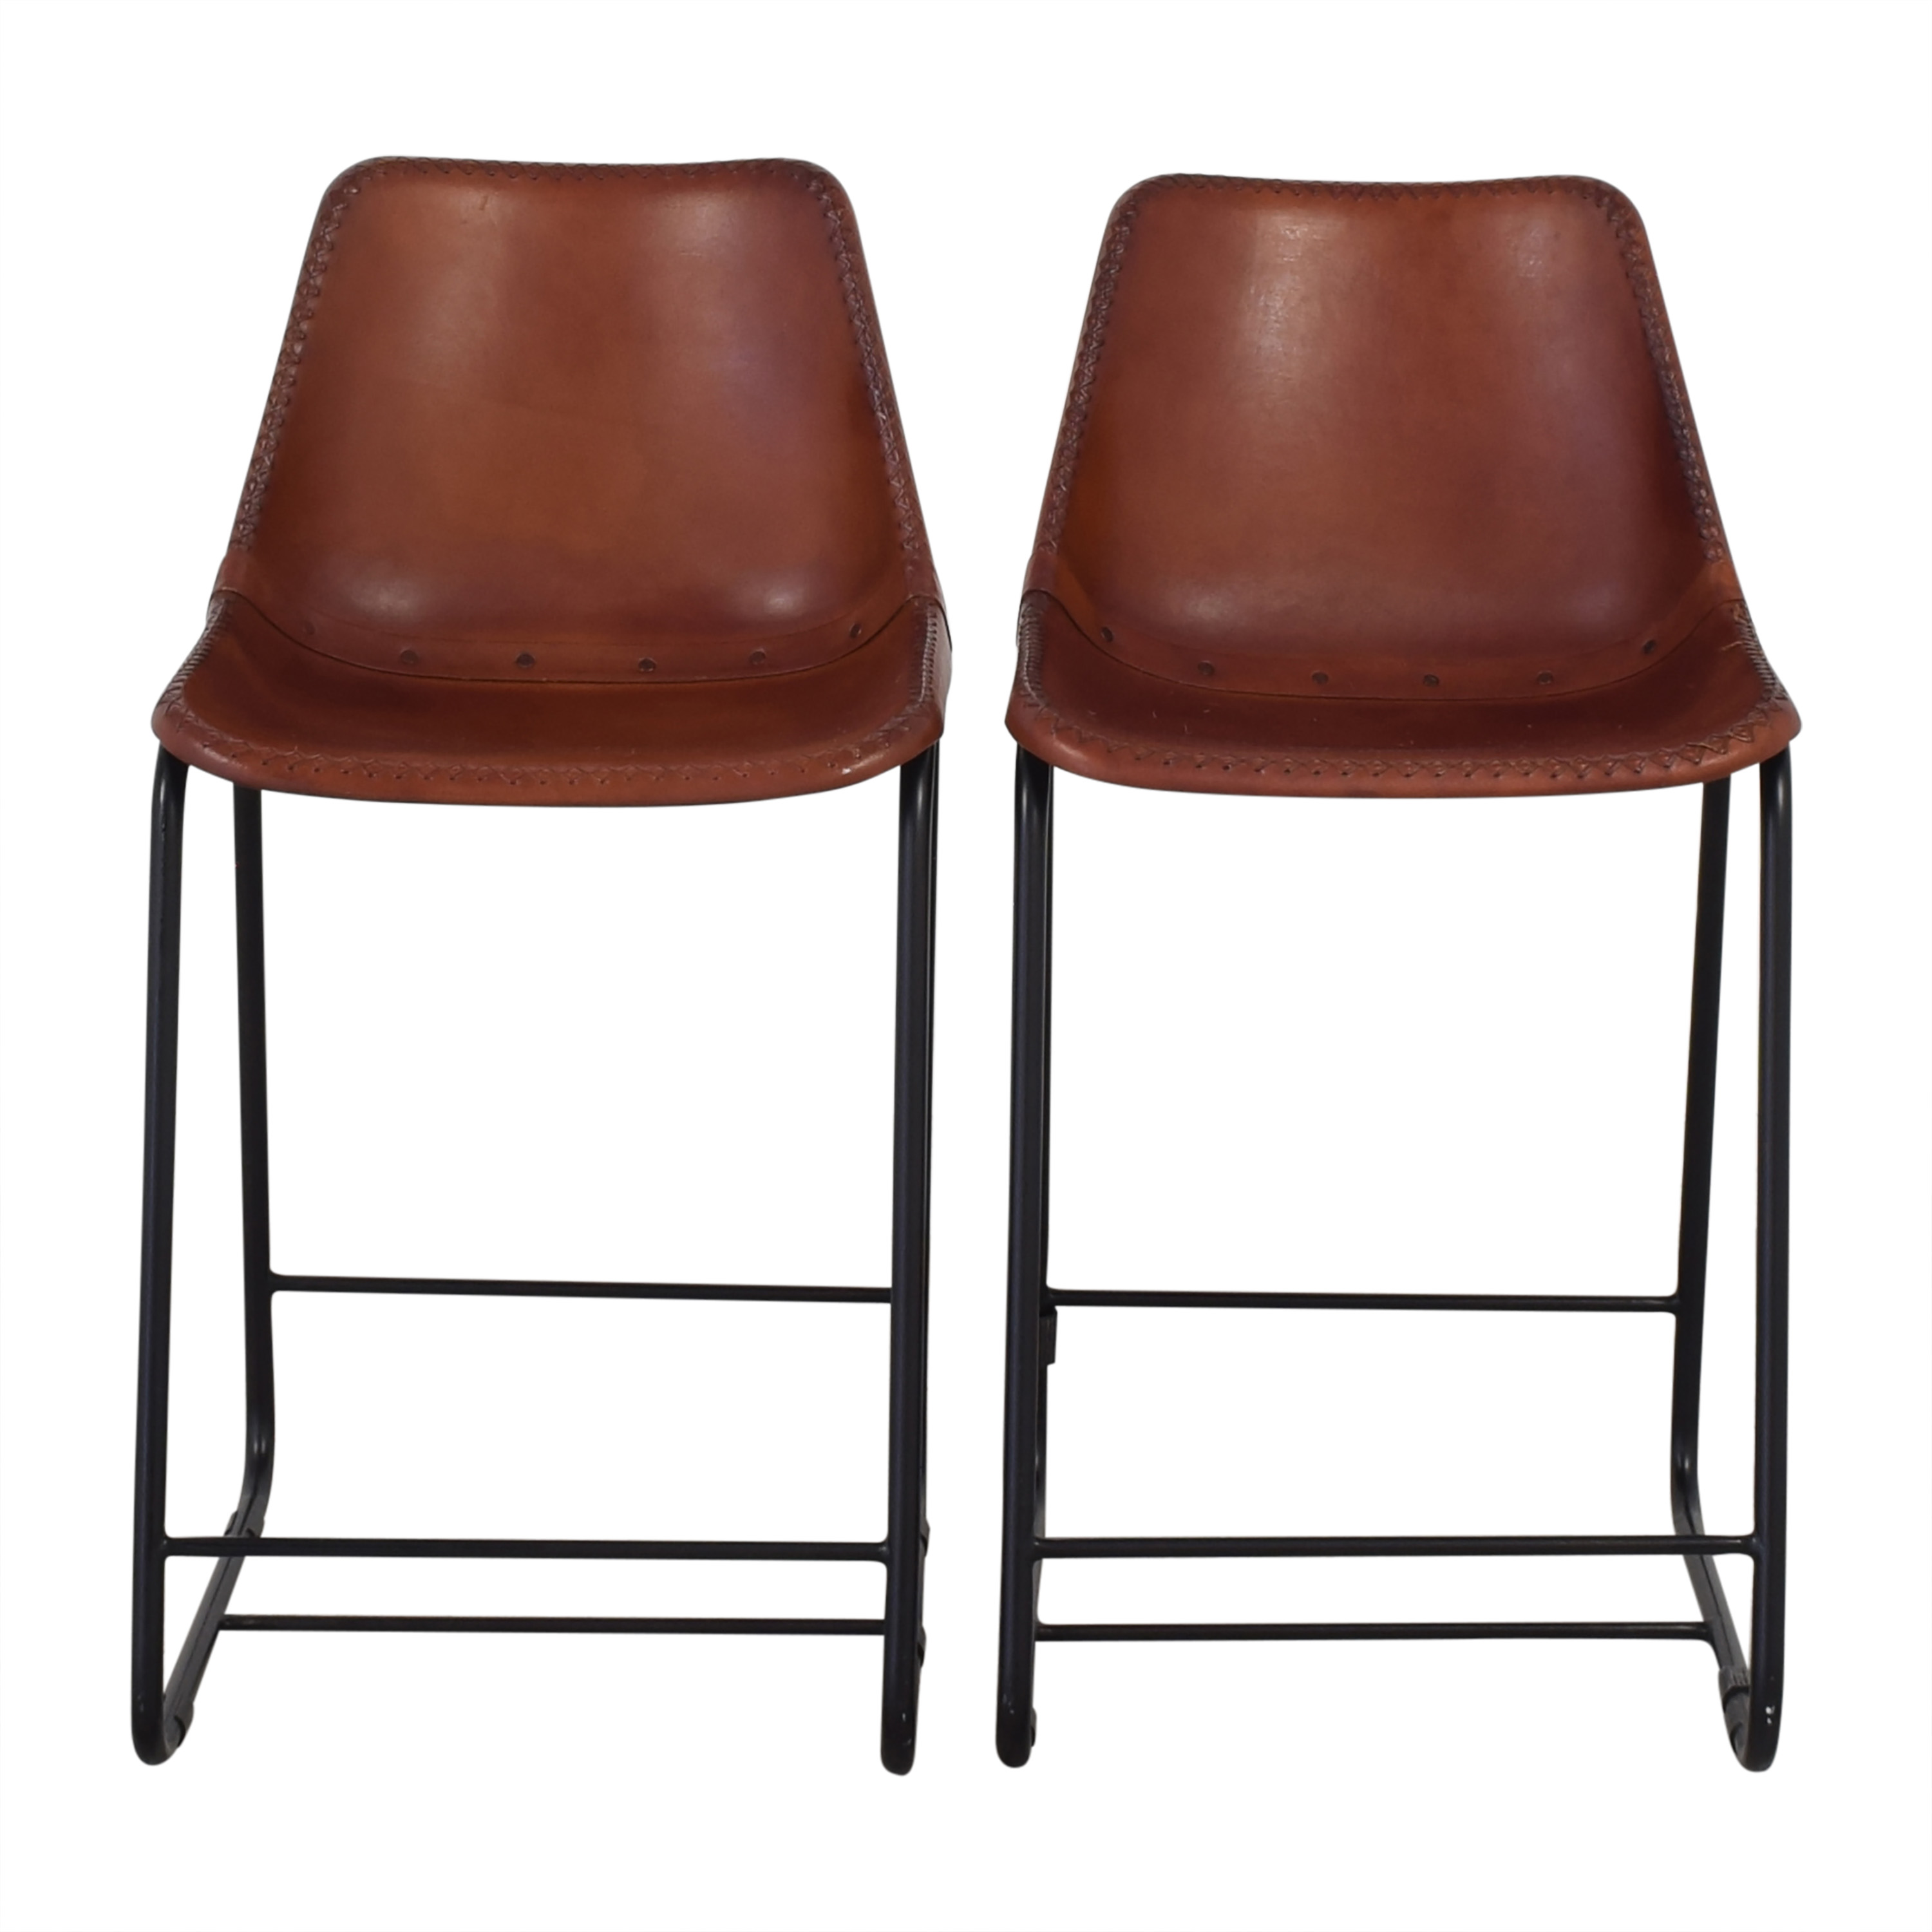 CB2 CB2 Roadhouse Counter Stools for sale